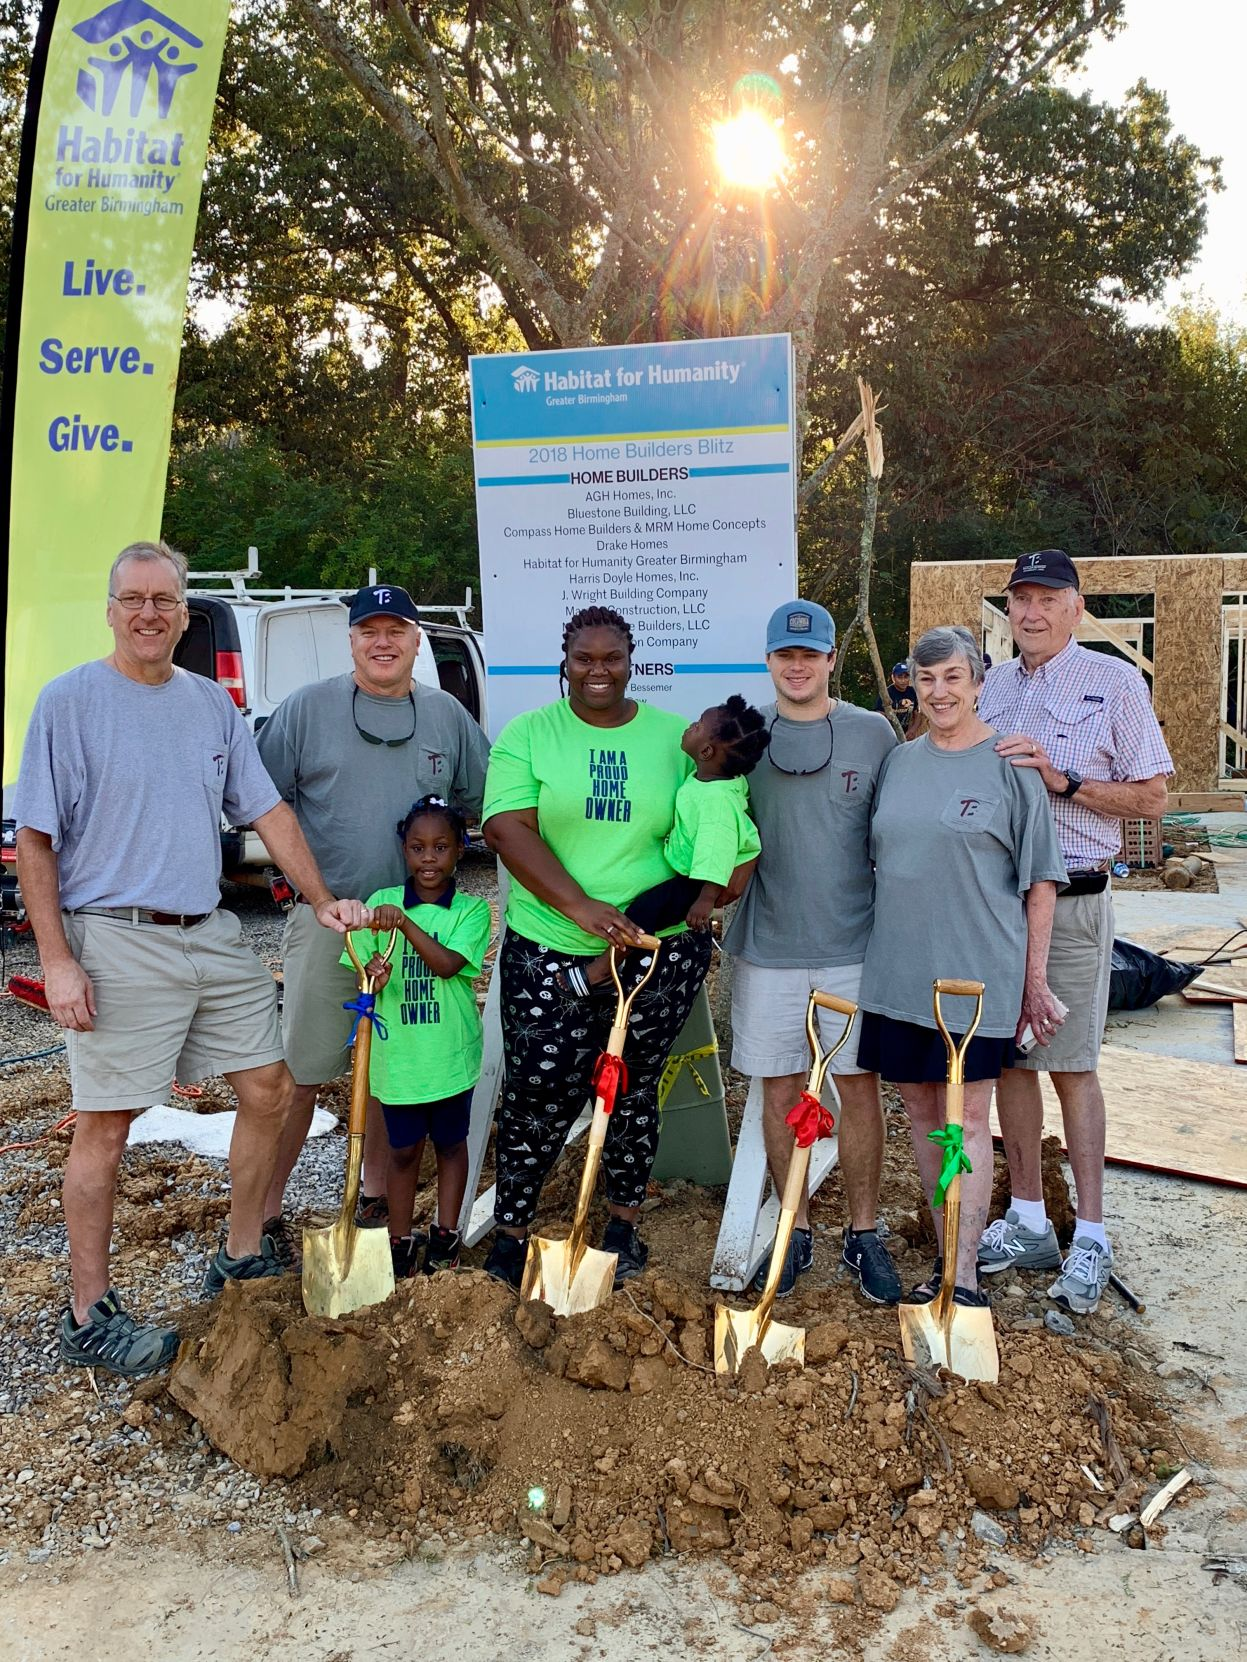 habitat for humanity hold ground breaking for home builders blitz in rh thecutoffnews com